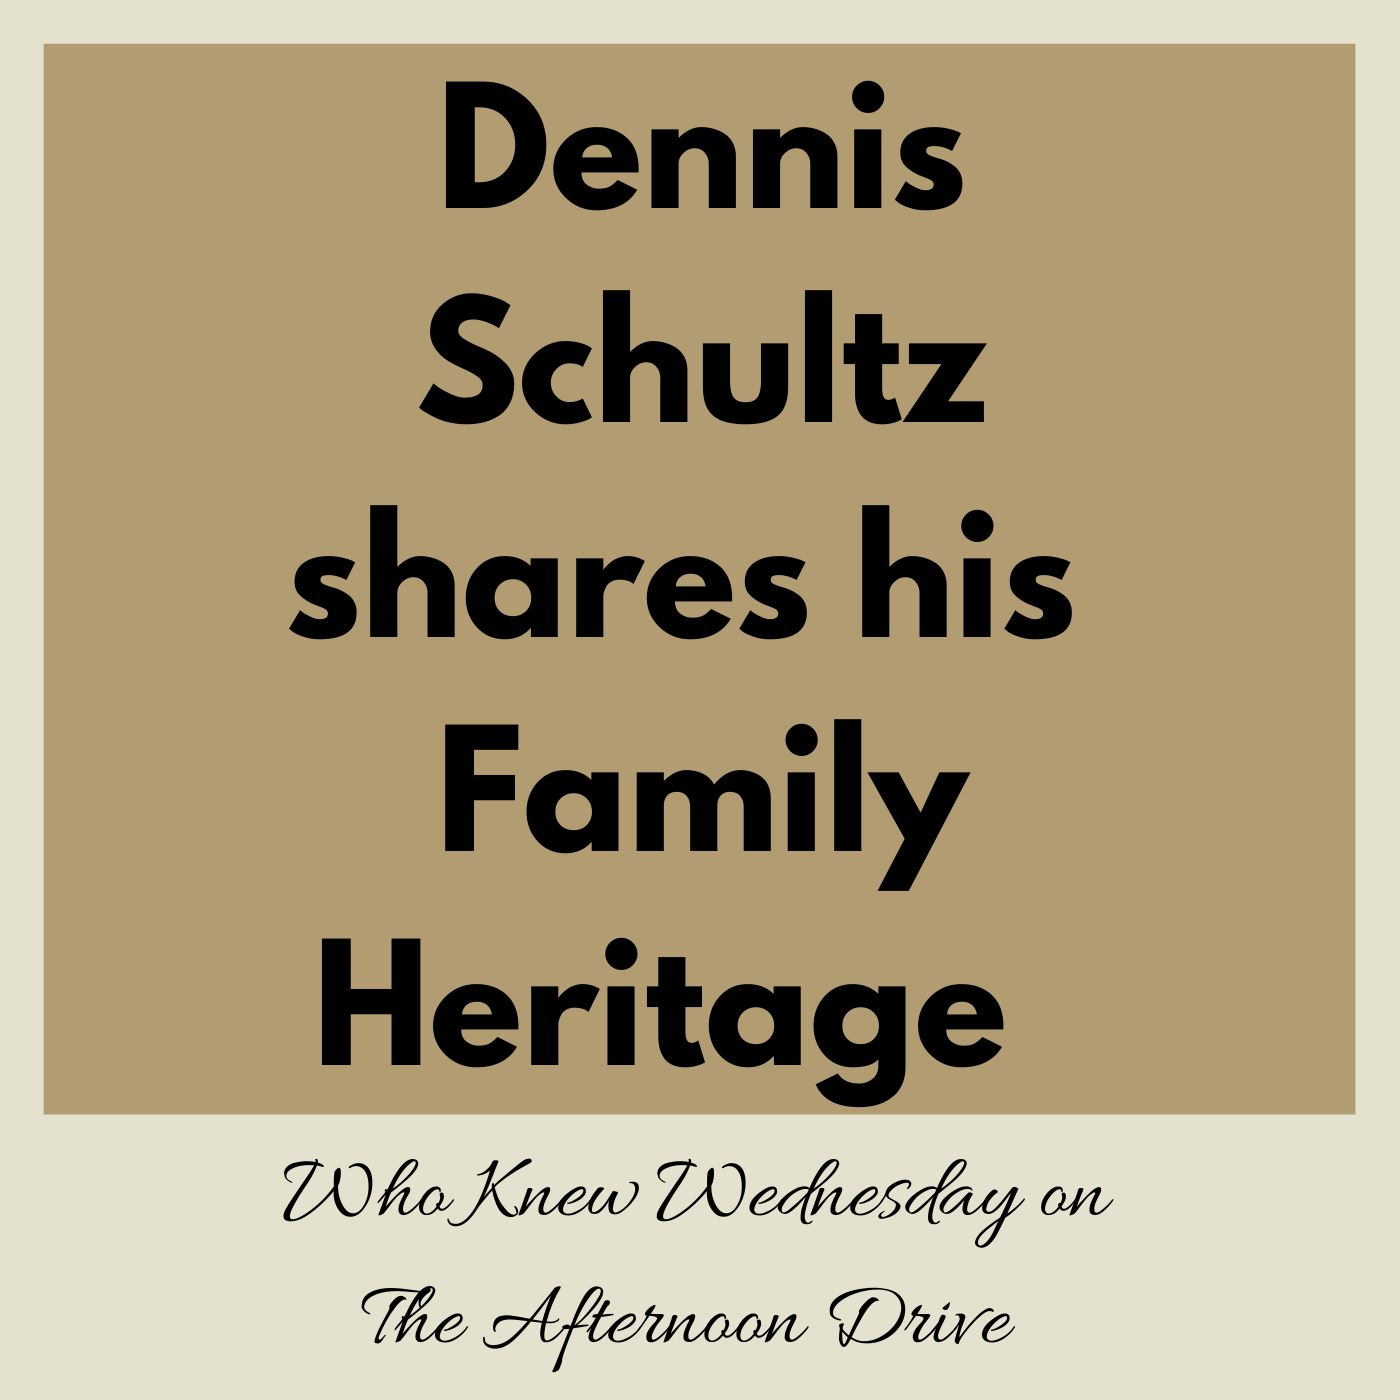 Dennis shares his Family Heritage